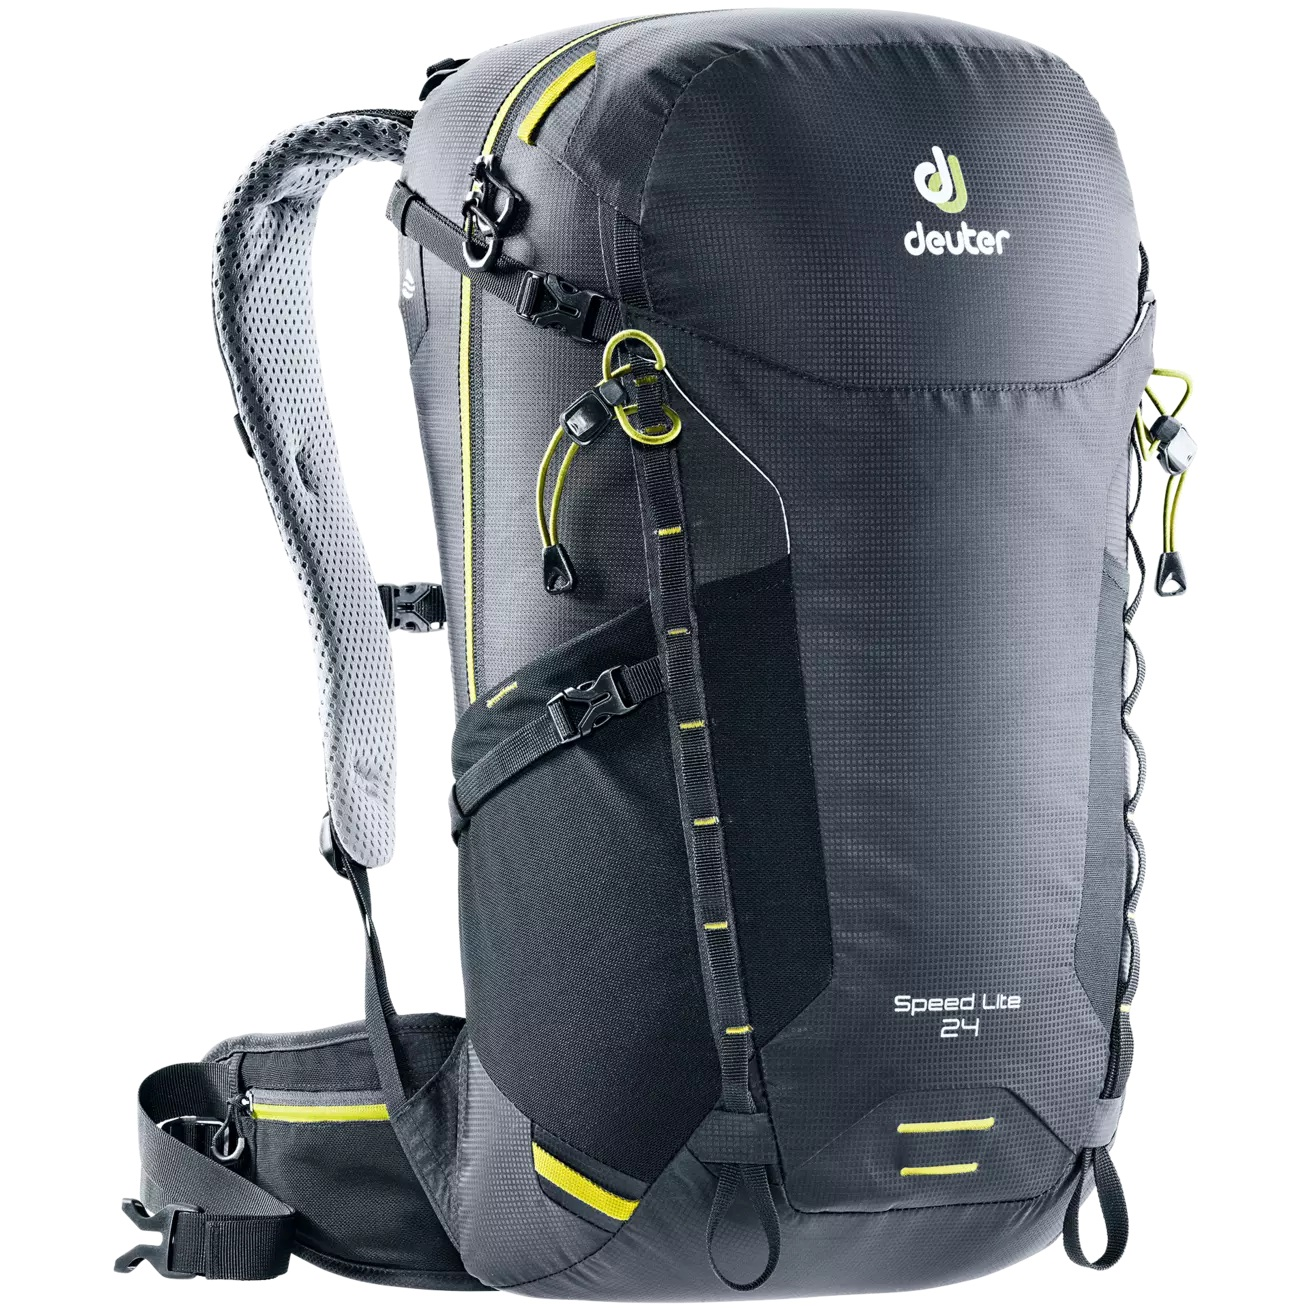 Deuter 'Speed Lite 24 ' Rucksack 24l 770g black